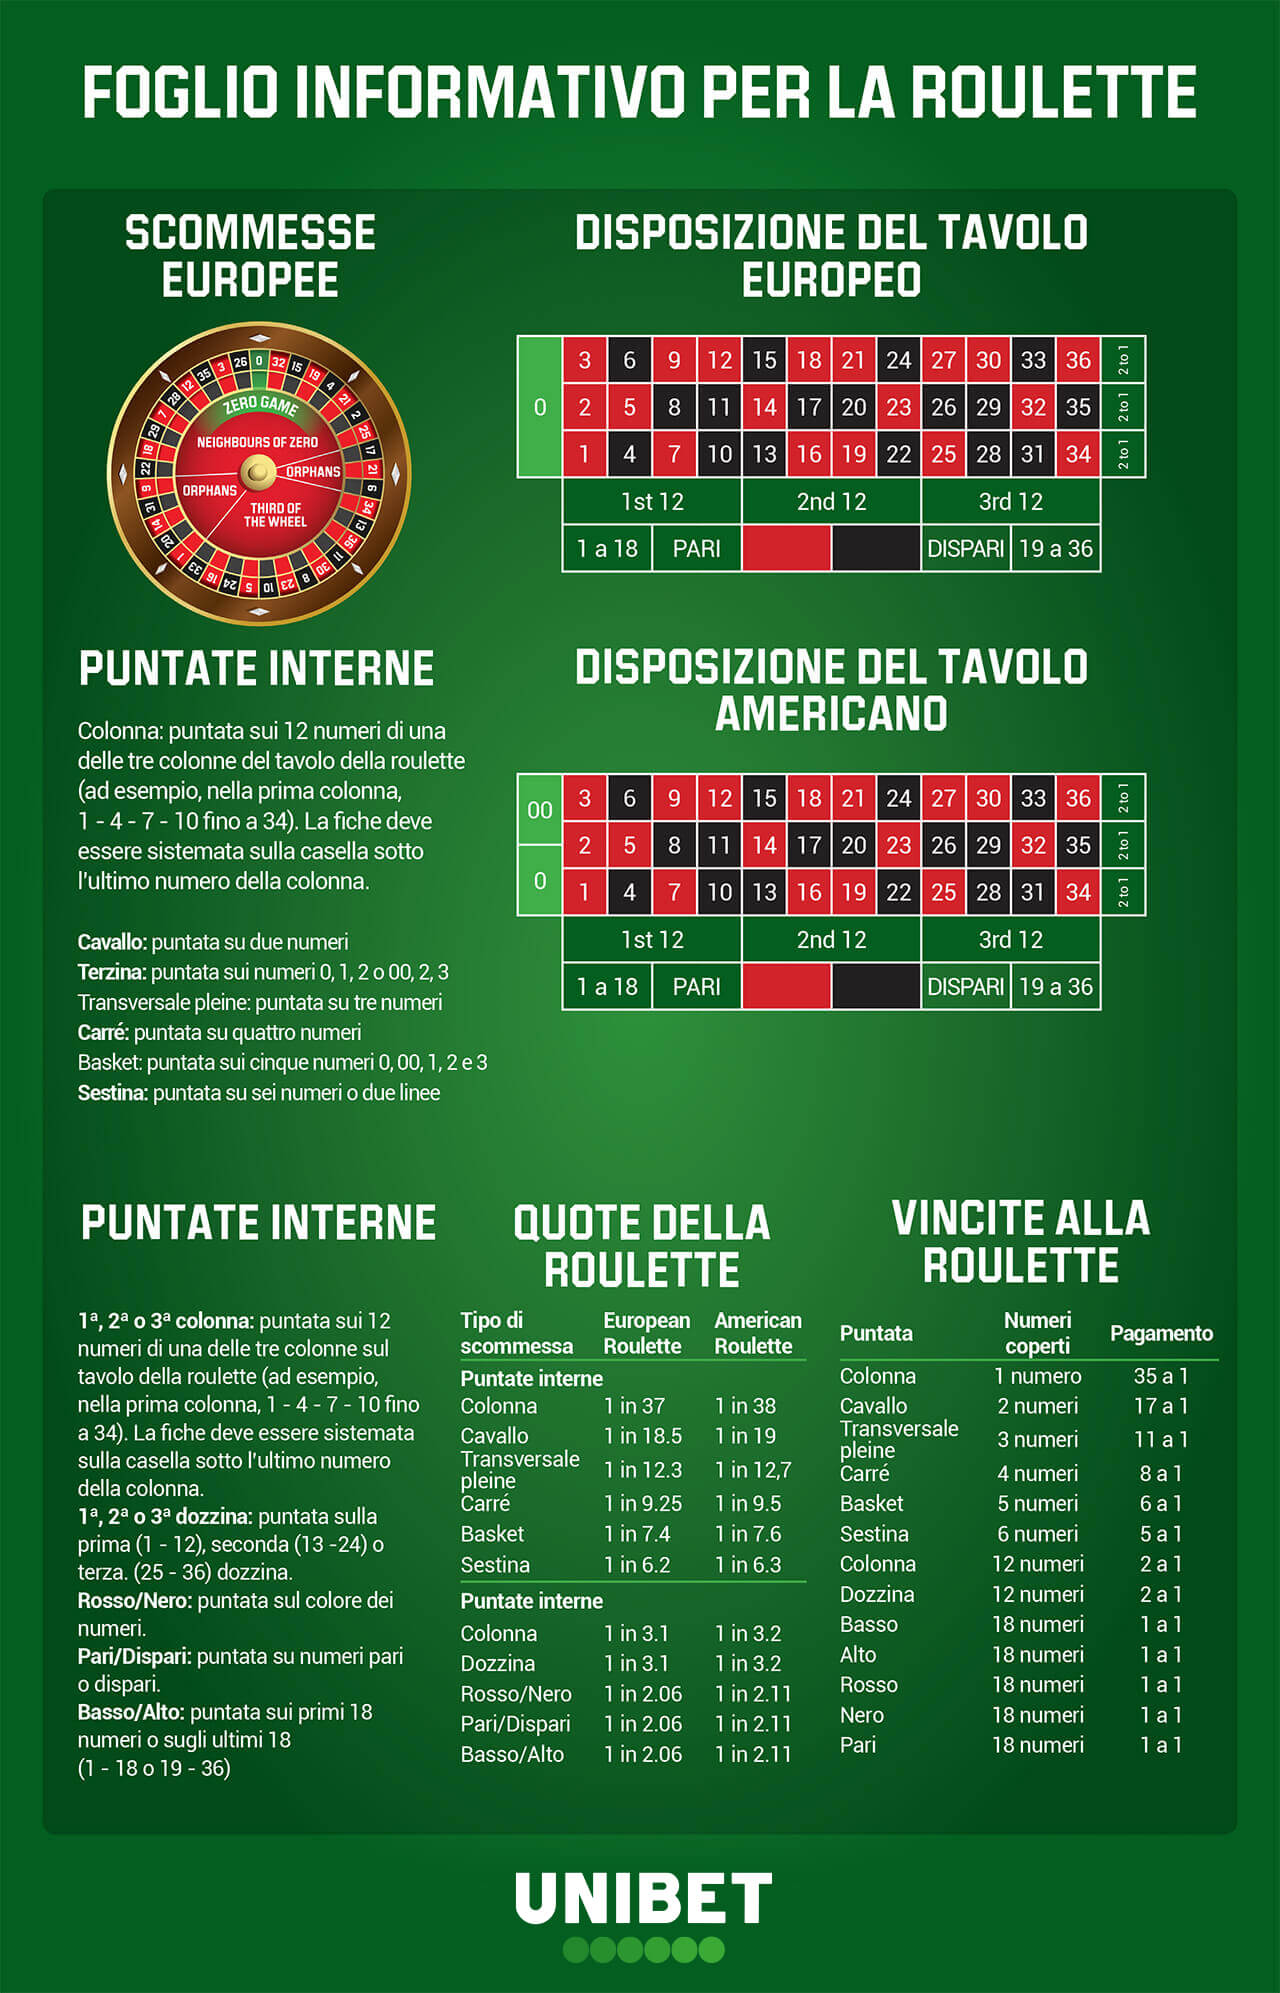 roulette-cheat-sheet-it